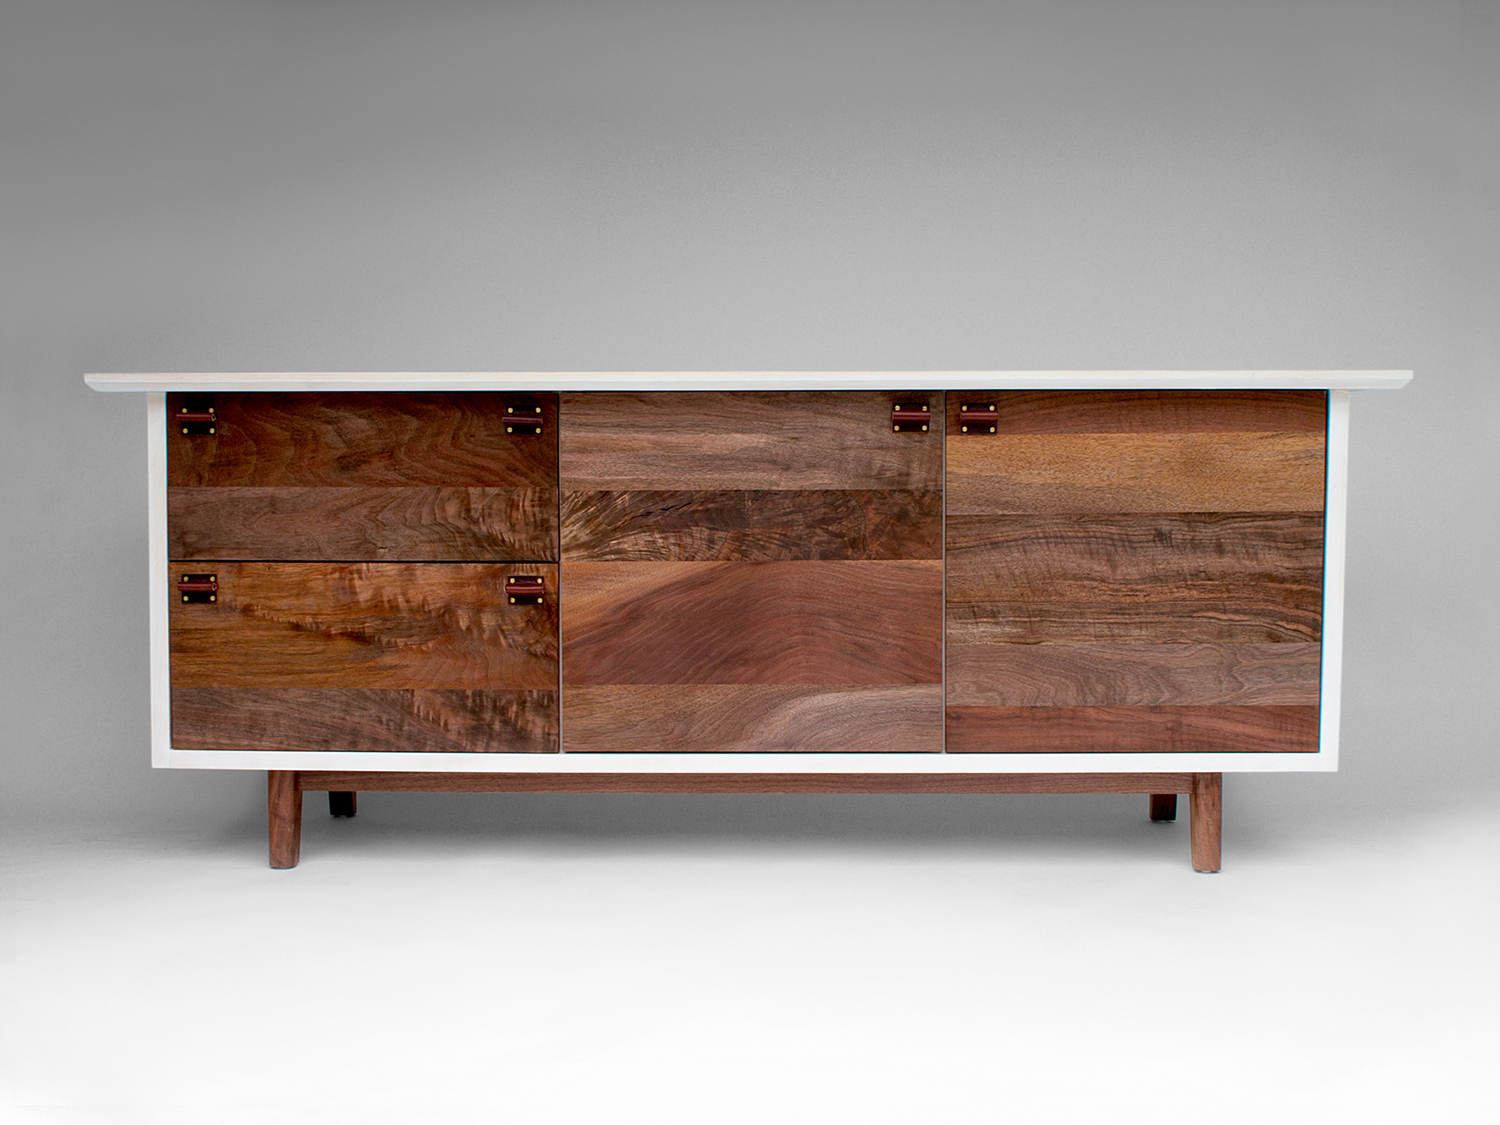 """72""""L x 22""""D x 28""""H Bleached Maple casing, Claro Walnut front and base, oxblood saddle leather pulls"""